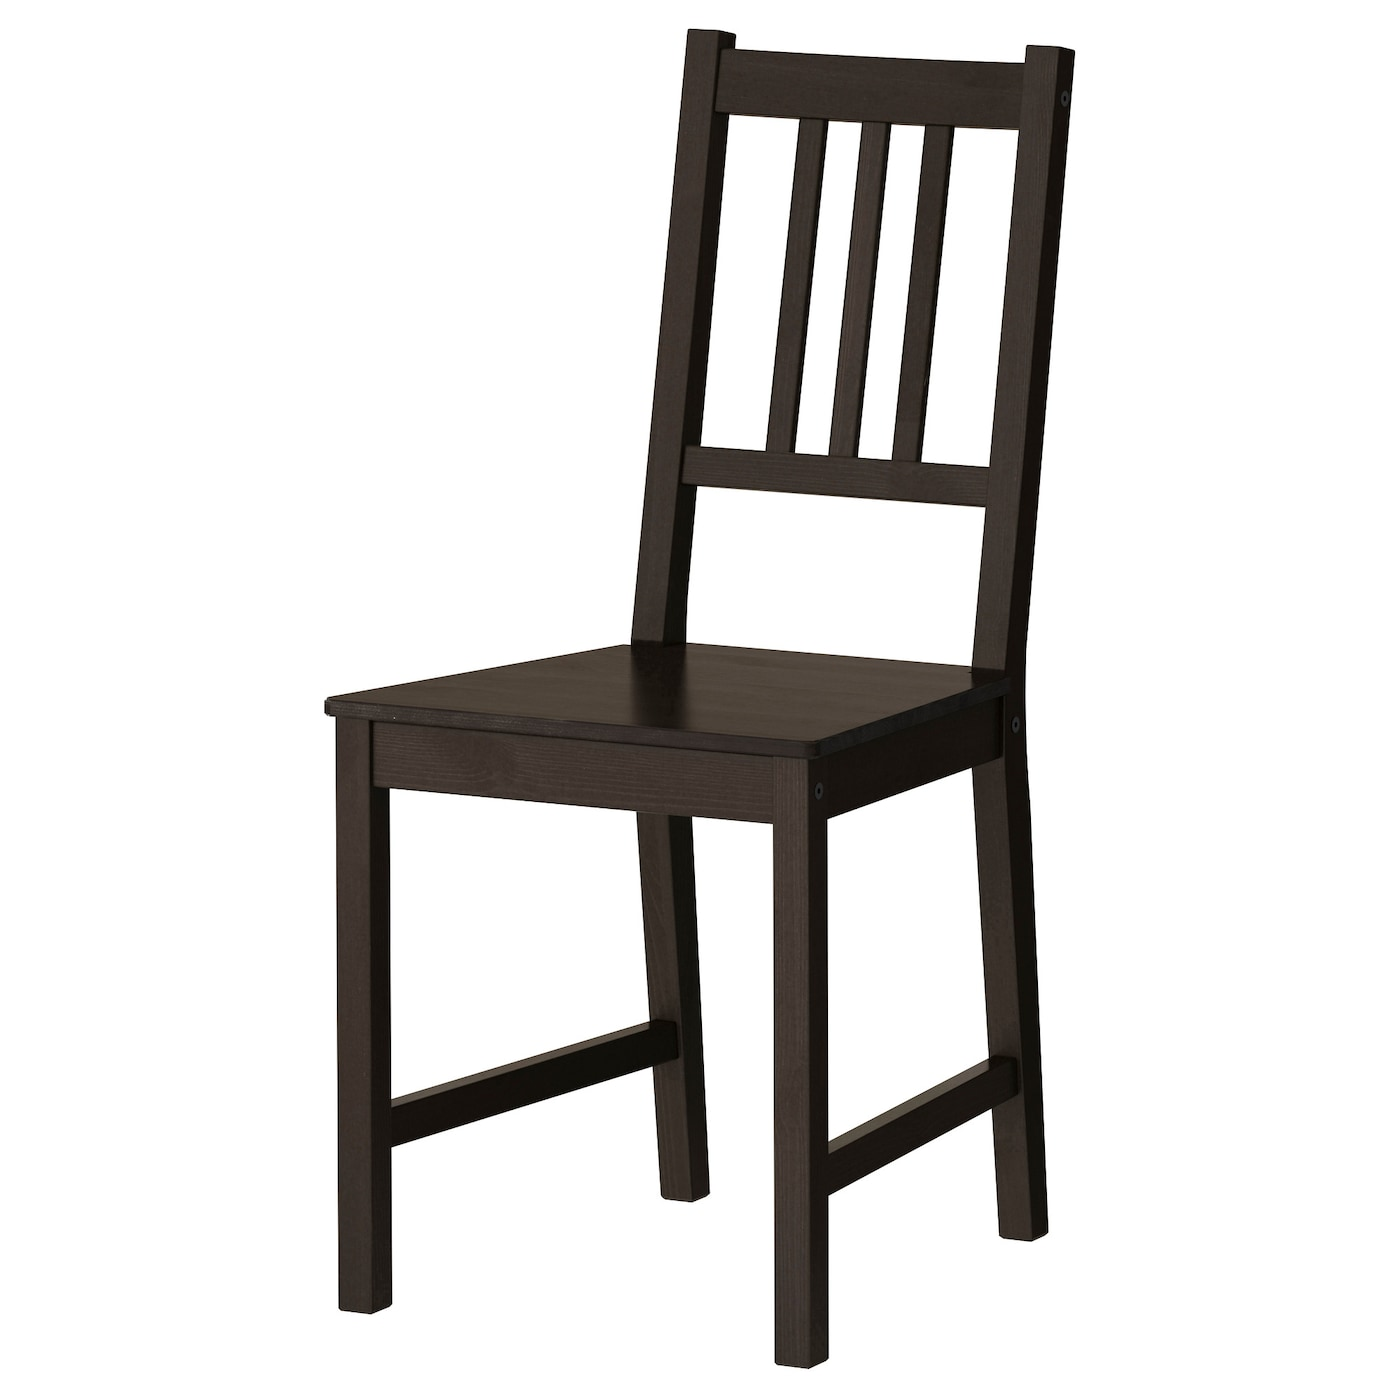 Stefan chair brown black ikea for Sillas para desayunador